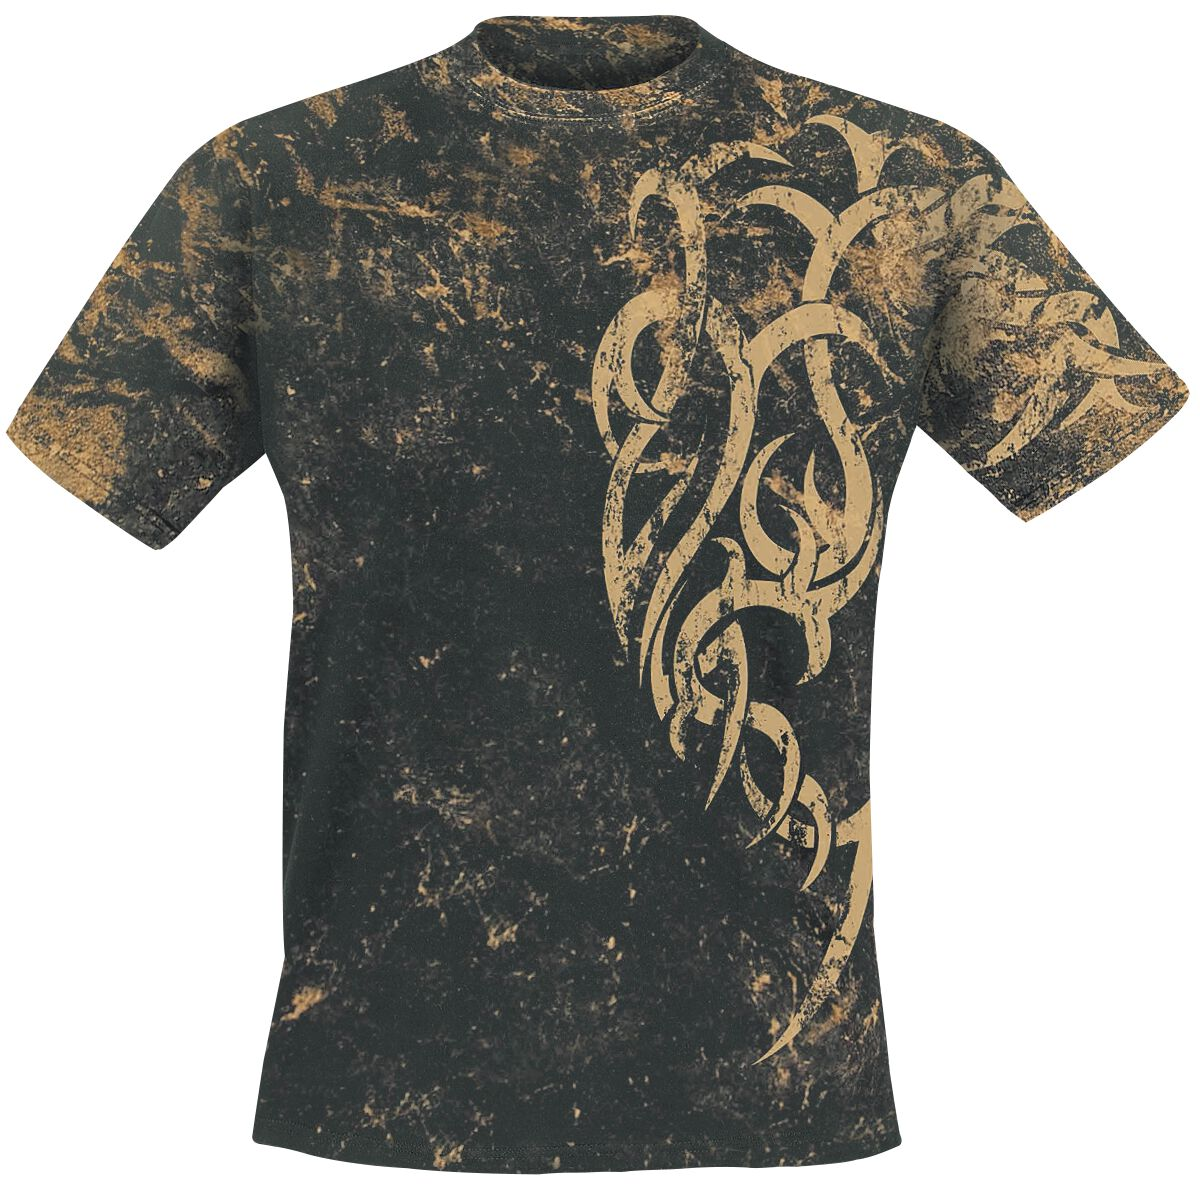 Image of   Outer Vision Marble Tattoo T-Shirt sort